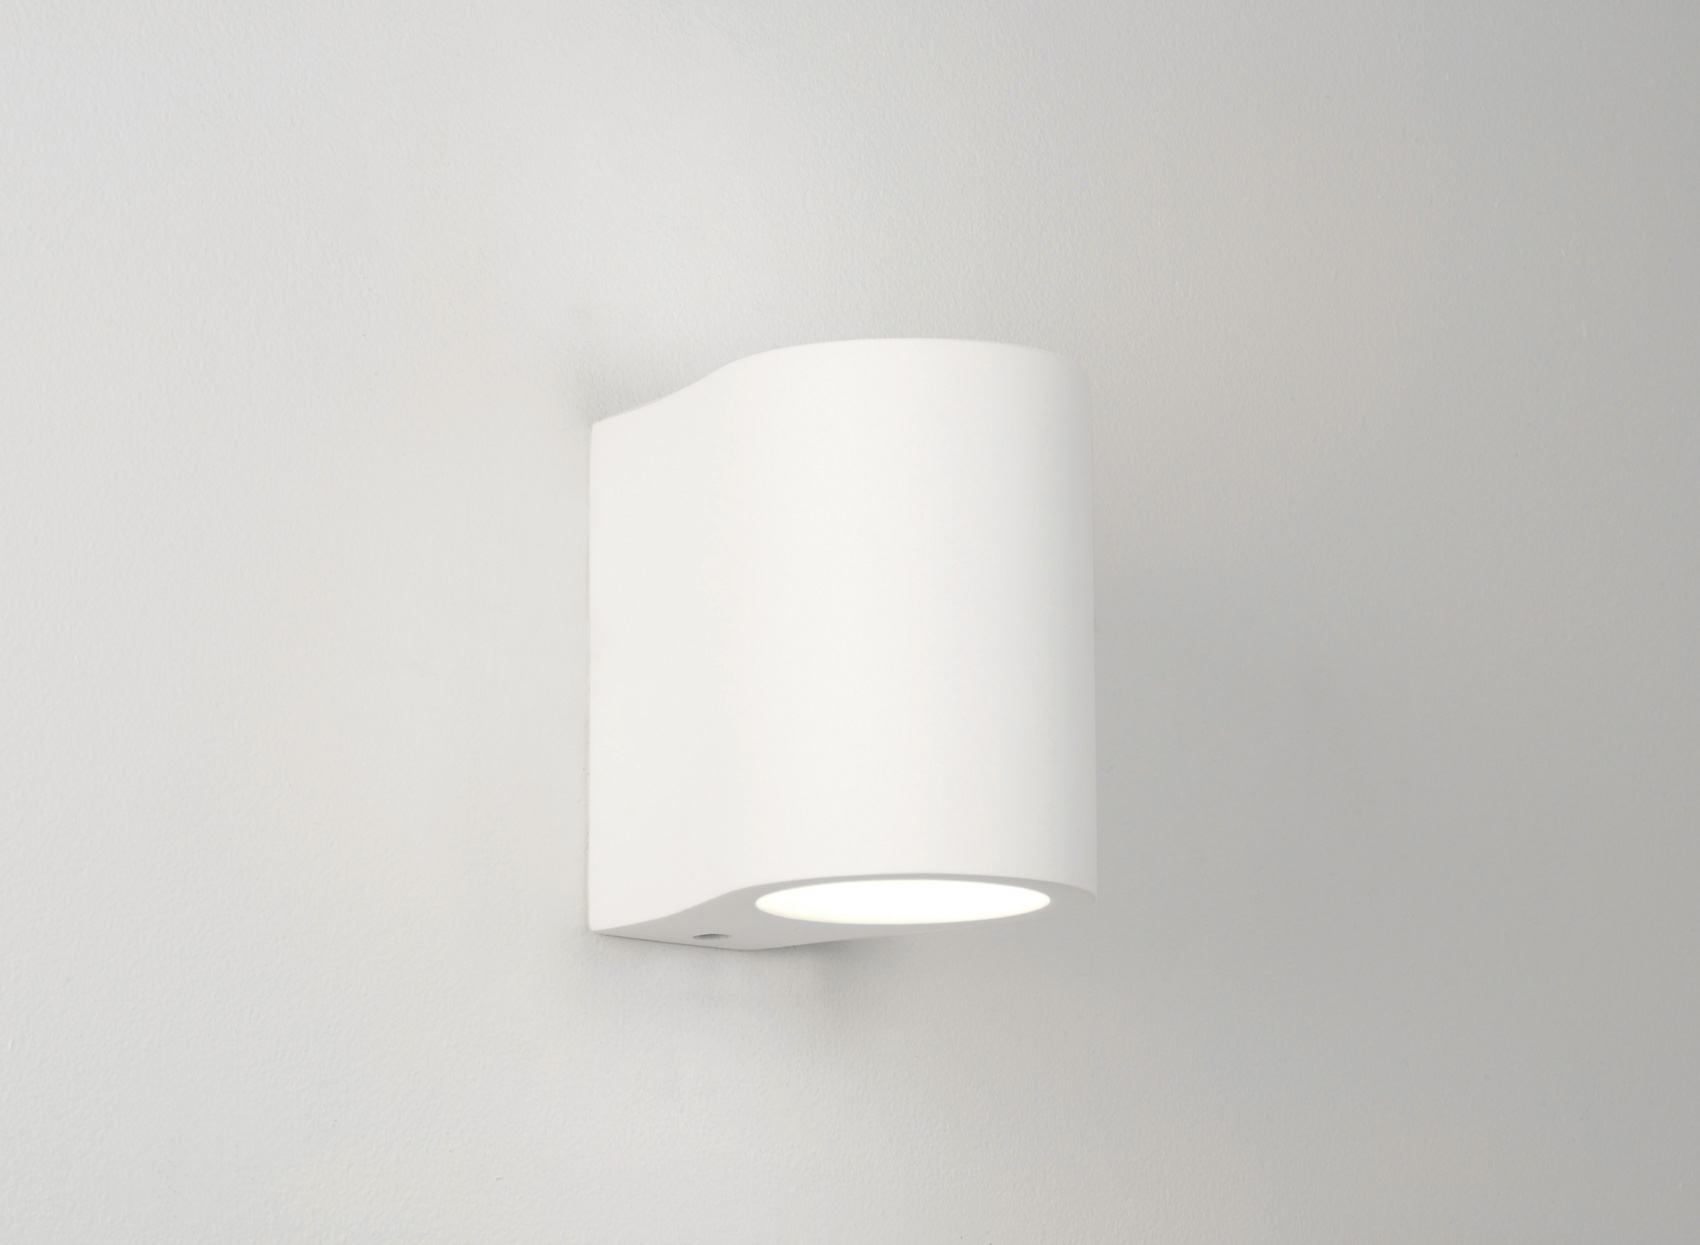 Astro Pero 0812 dimmable wall light 1x40W G9 lamp IP20 white plaster finish eBay